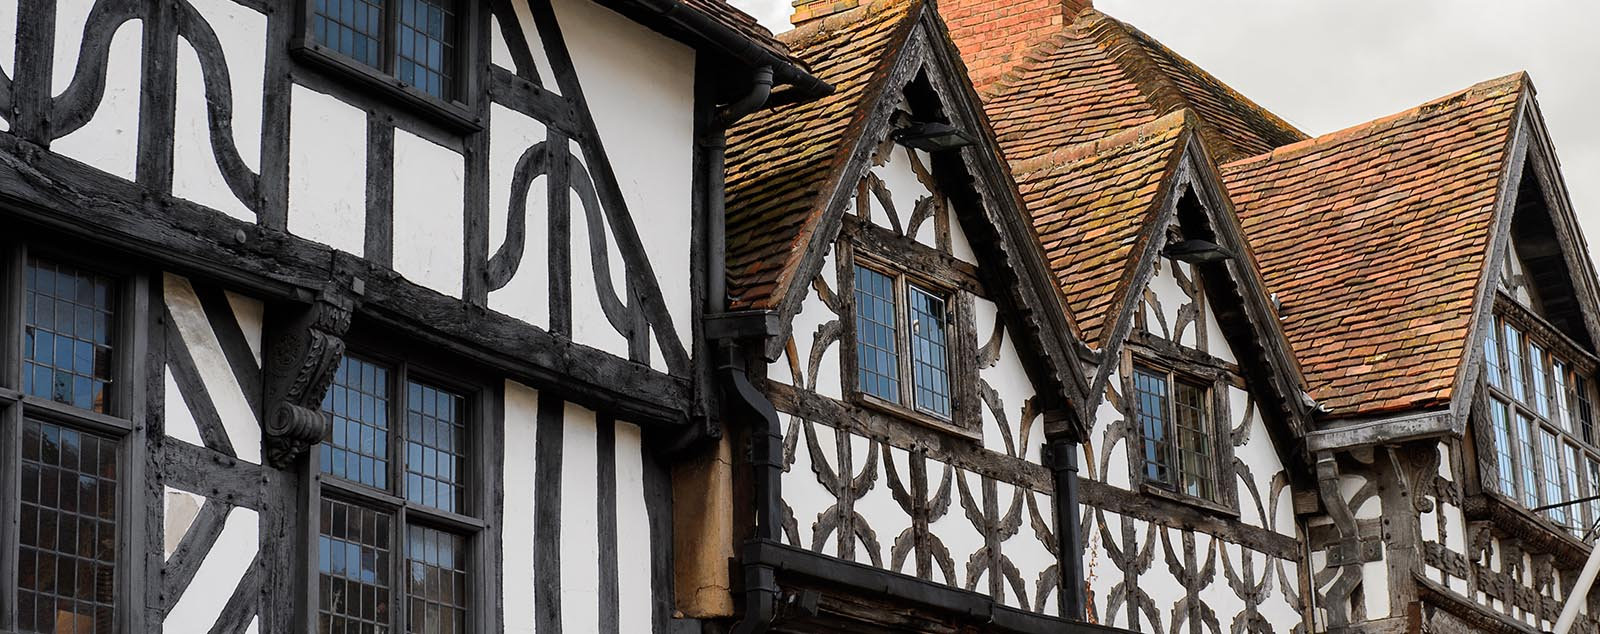 Medieval timber-framed houses in Church Street, Stratford-upon-Avon